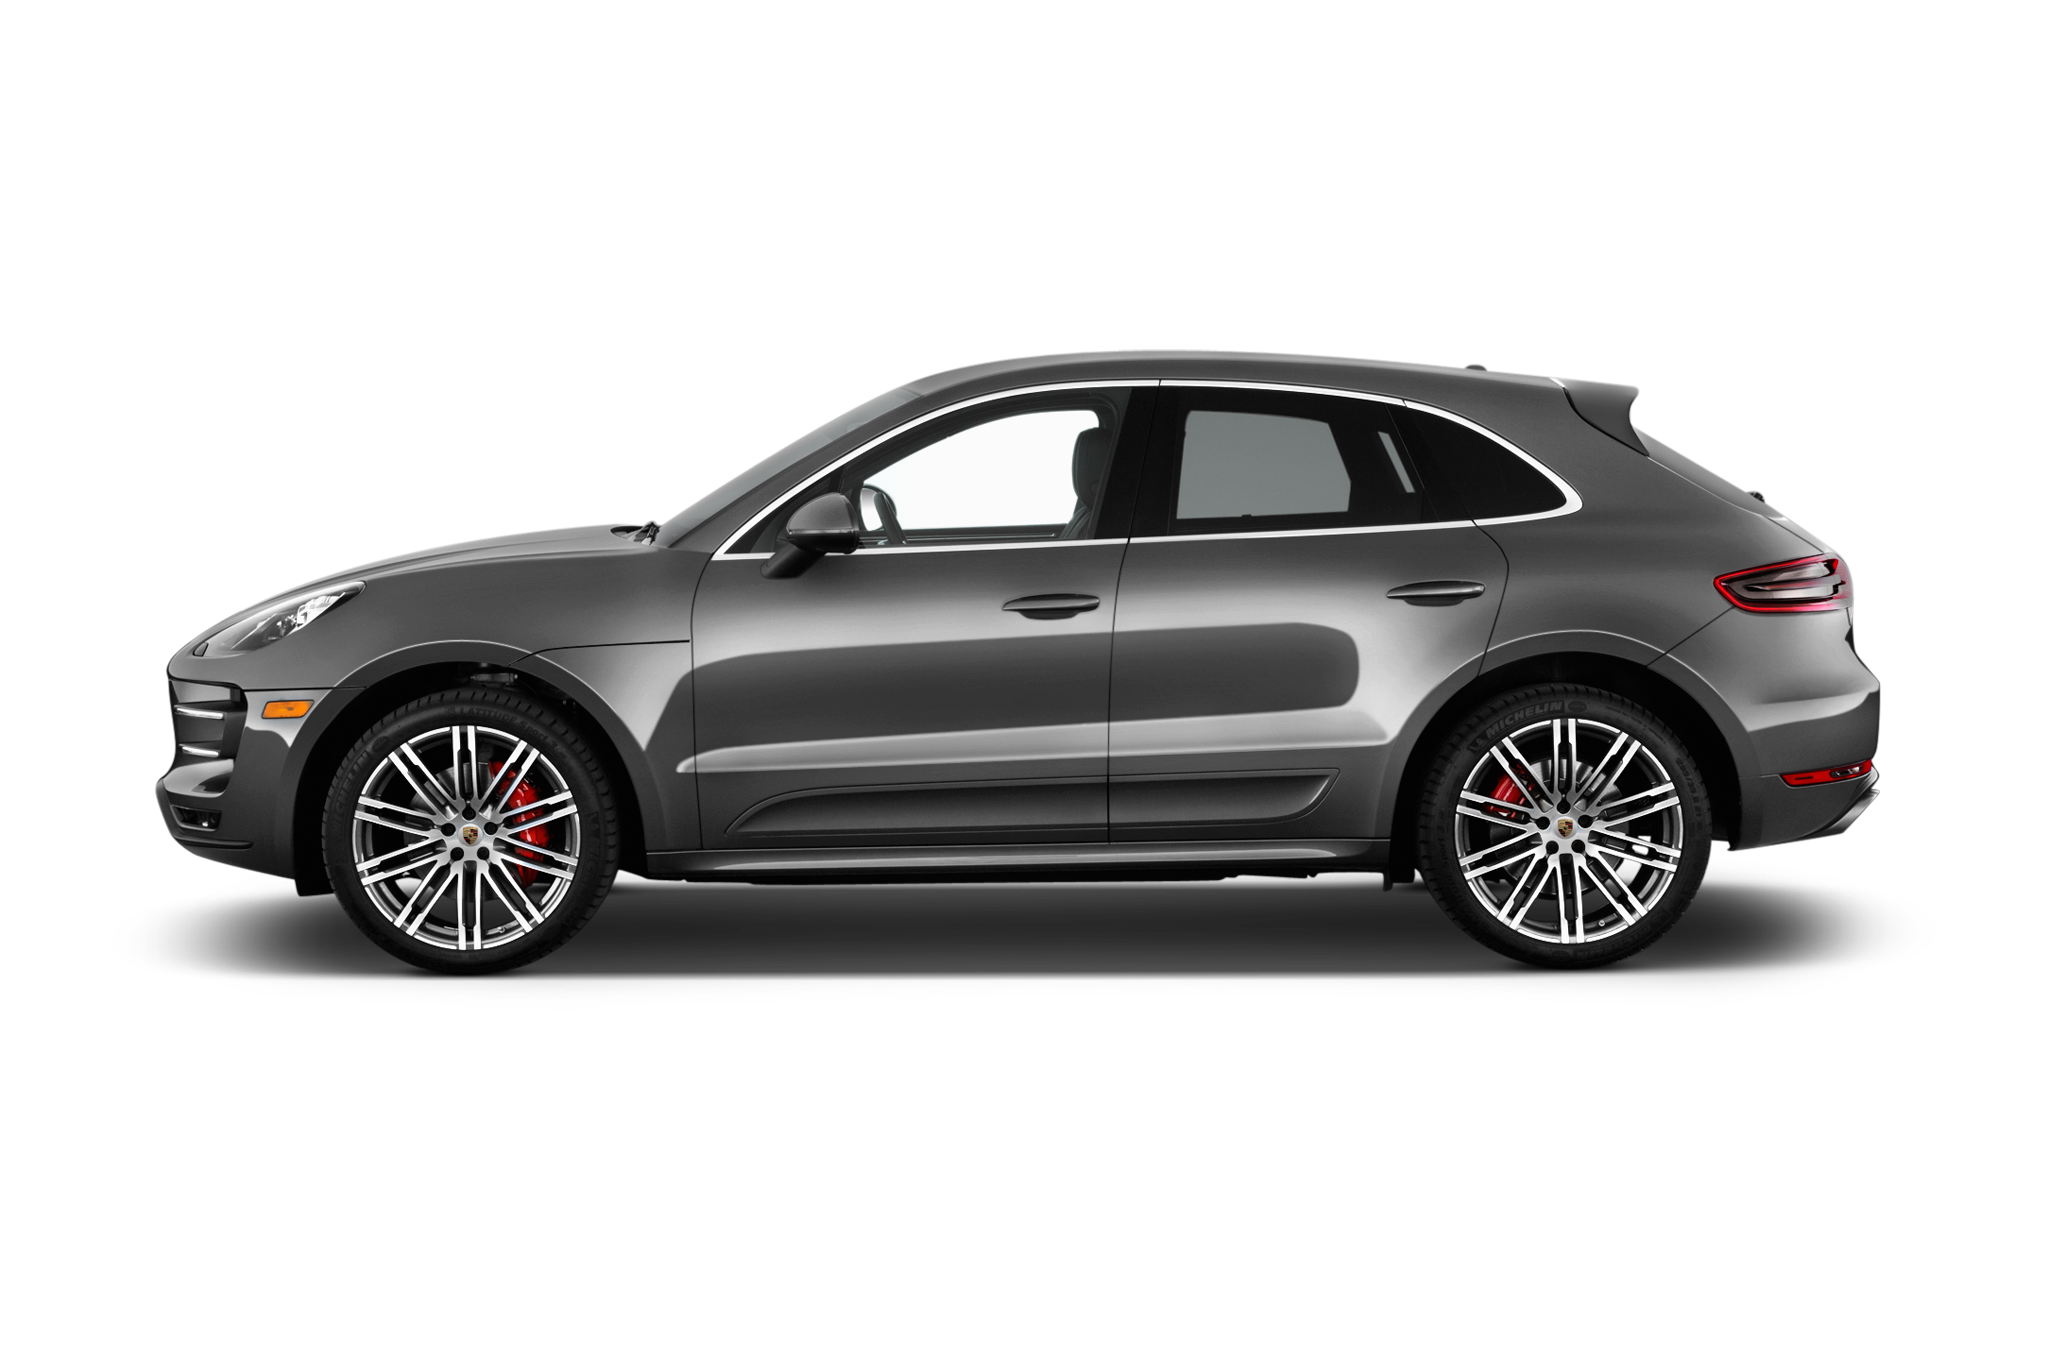 Porsche Macan Restyling 2018 >> 2017 Porsche Macan Adds 252-HP Turbo-Four Base Model | Automobile Magazine